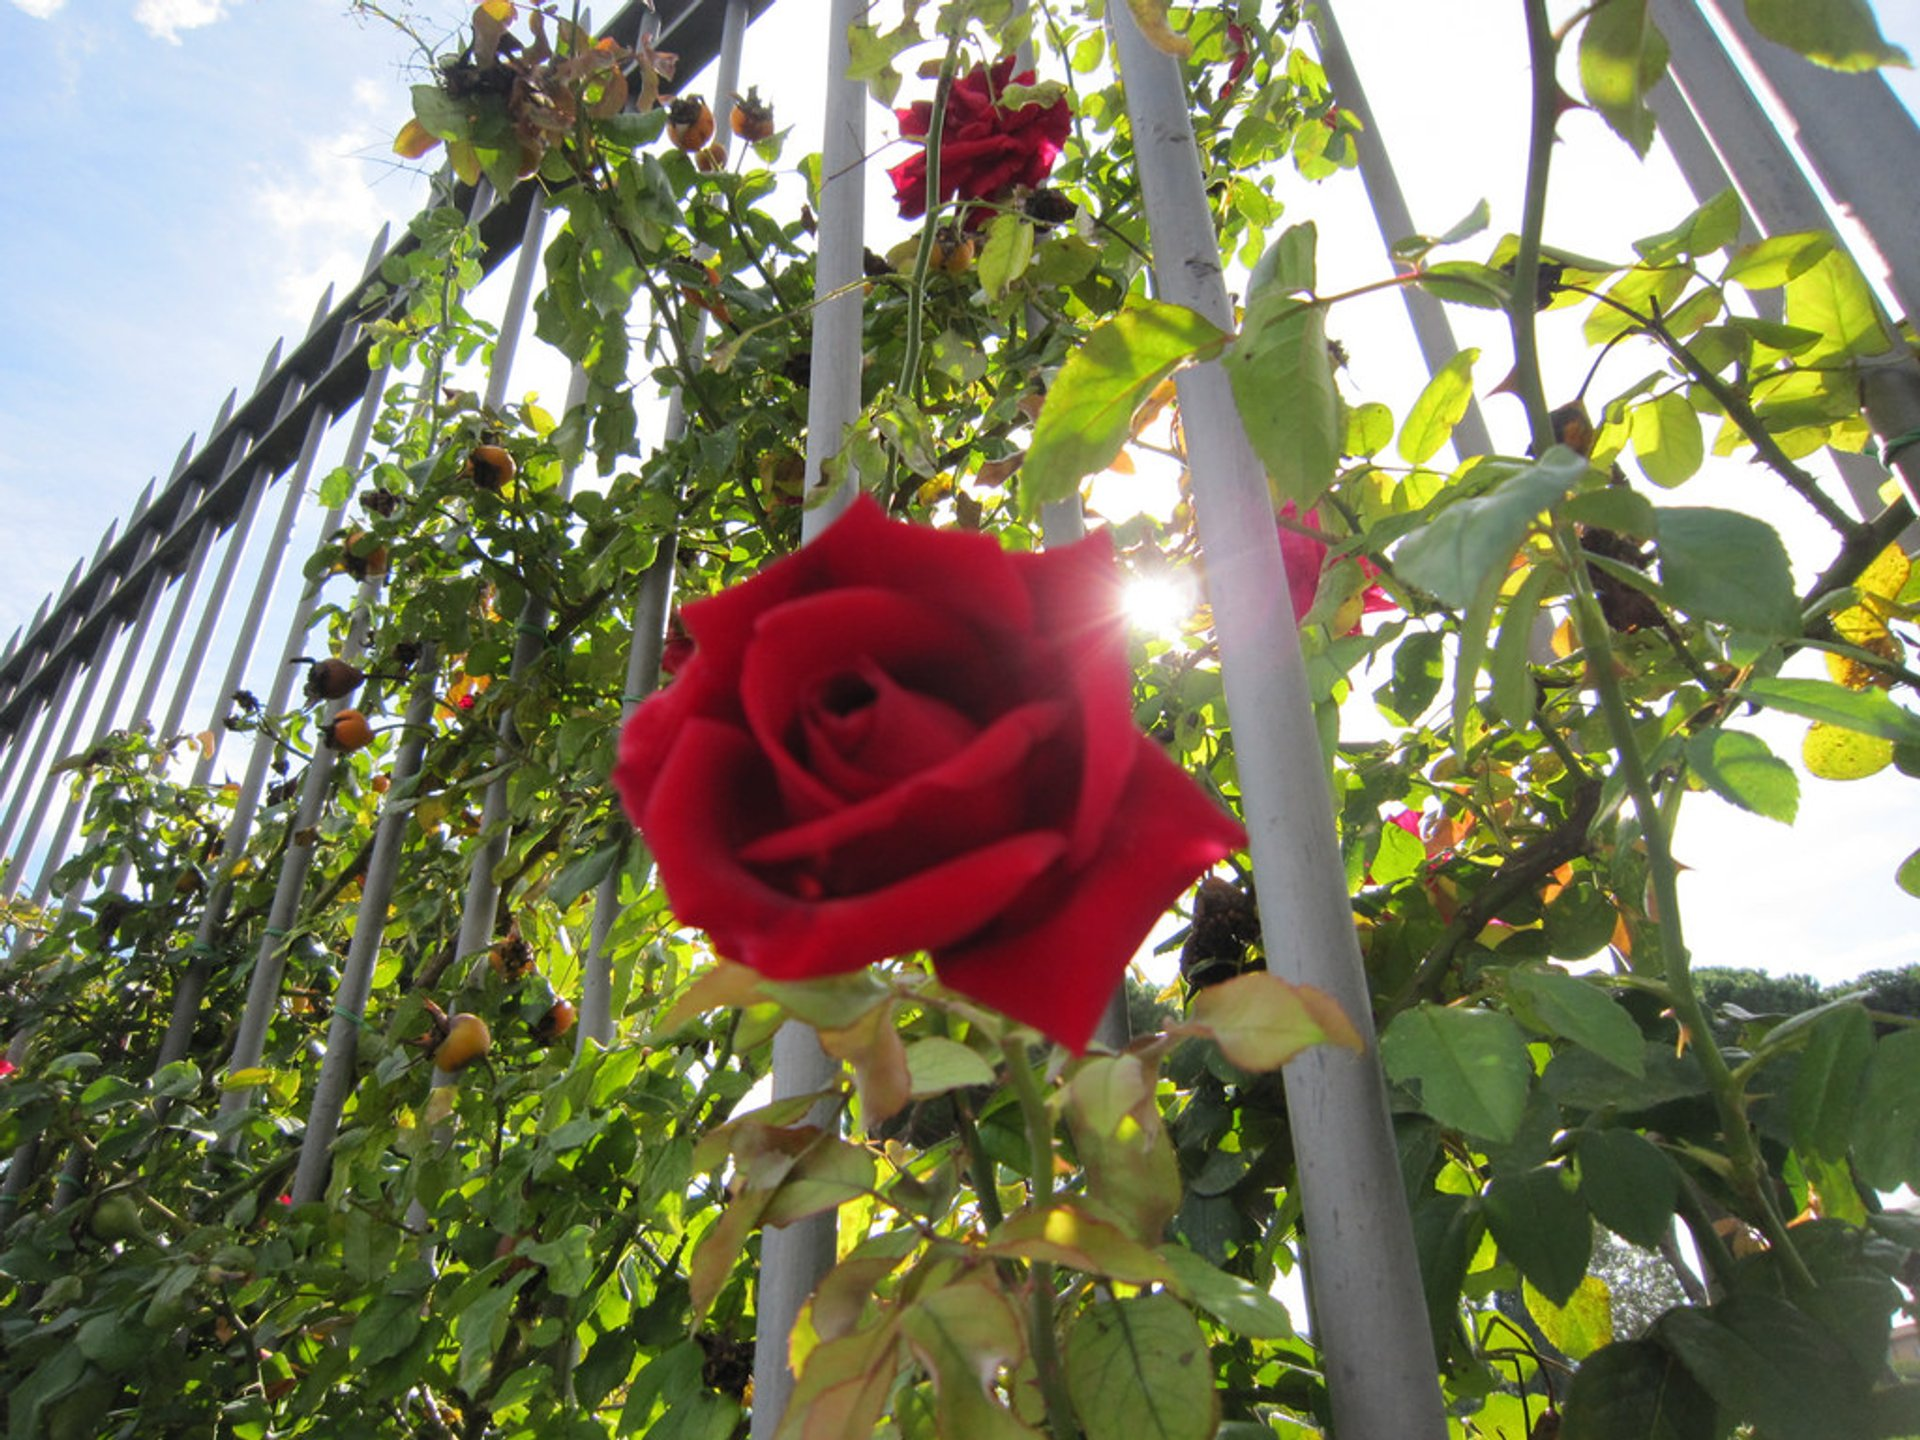 Roses at Roseto Comunale in Rome - Best Season 2019